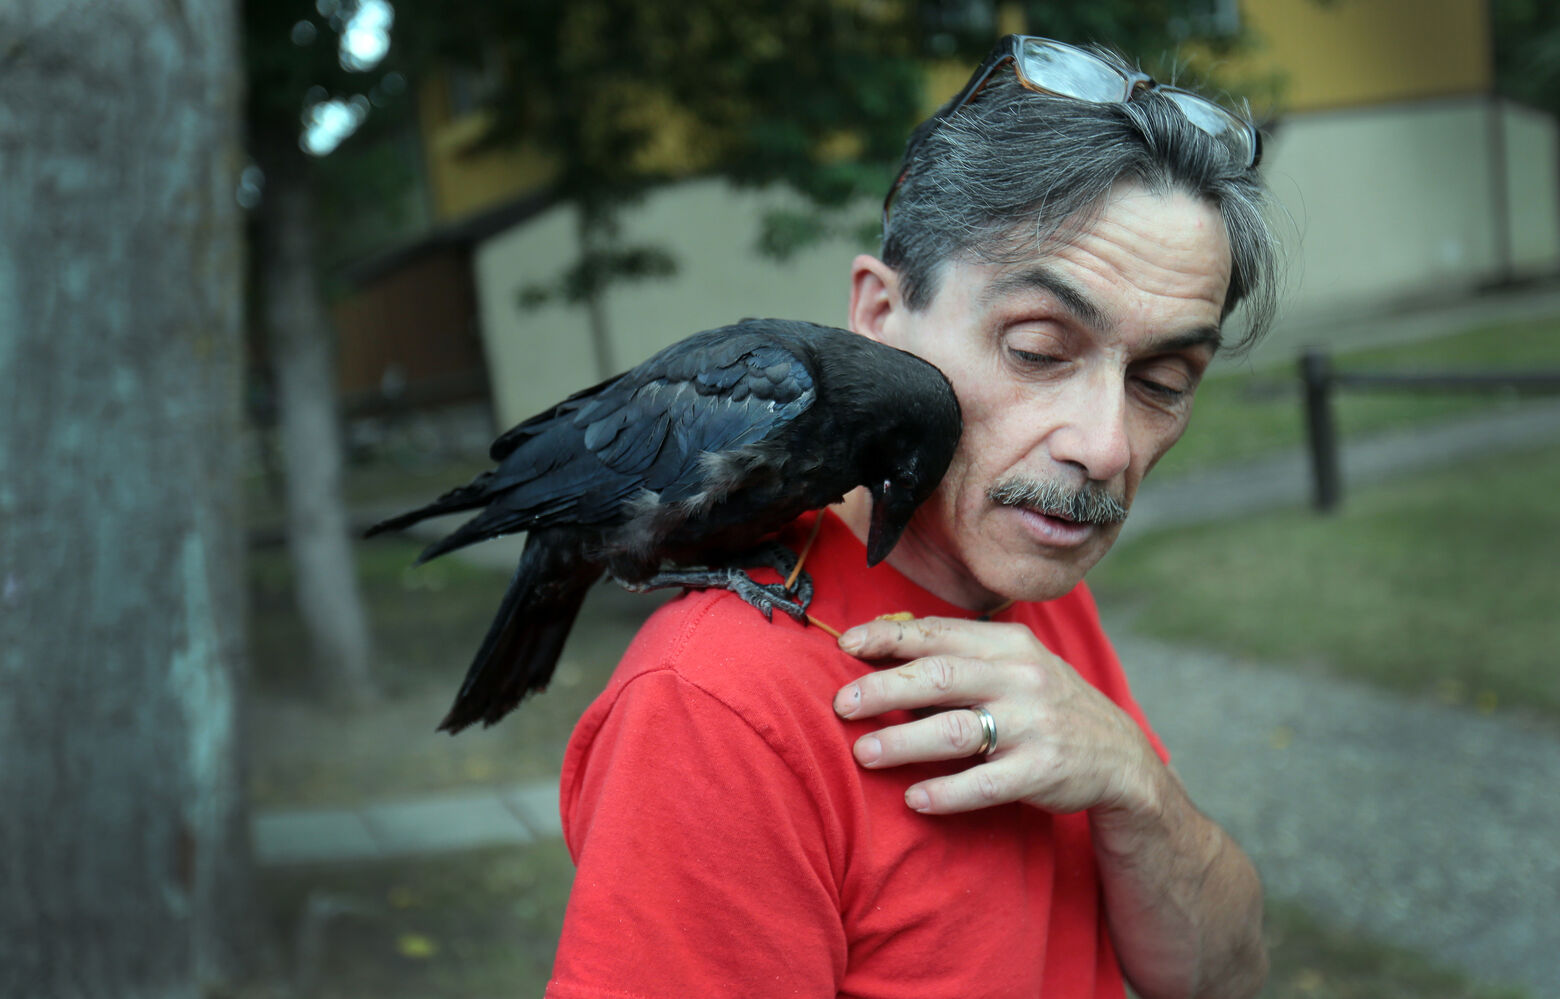 Charlie the crow perches on the shoulder of Gerald Dillon, who nursed the injured crow back to health when it was a chick, in August. Now, Charlie and Dillon have developed a bond, and the crow has become quite a sight around the Victoria Woods apartments. (Bruce Bumstead/Brandon Sun)